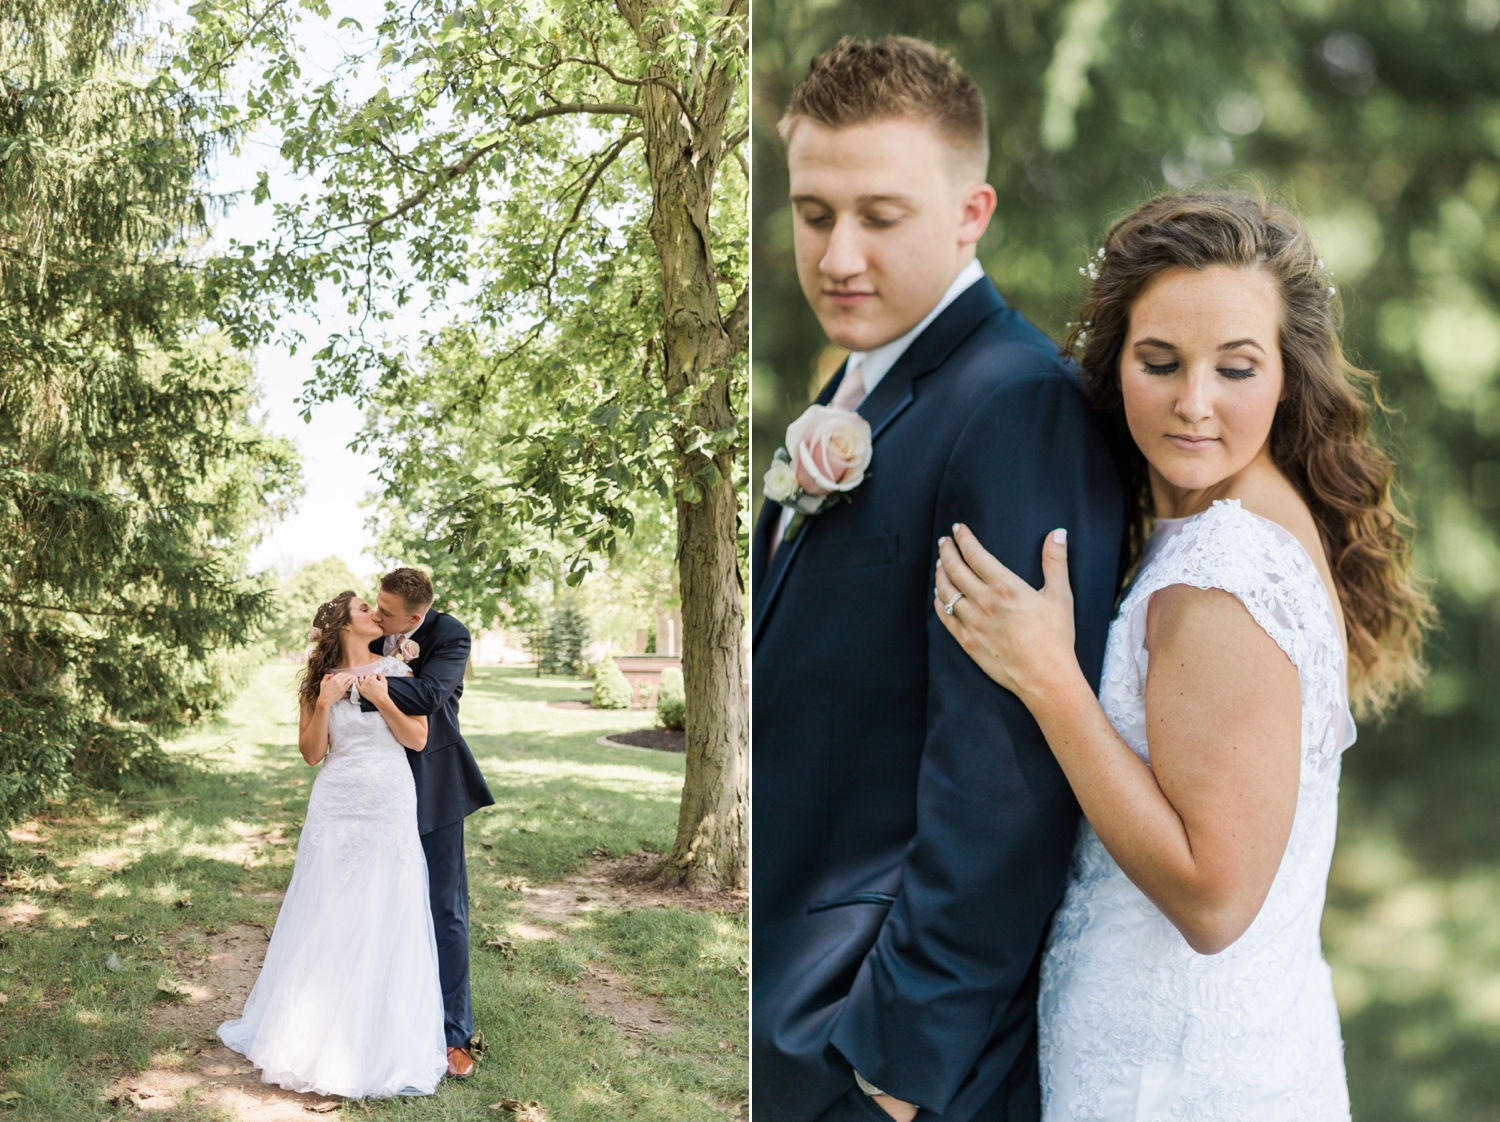 Community_Life_Center_Indianapolis_Indiana_Wedding_Photographer_Chloe_Luka_Photography_6901.jpg